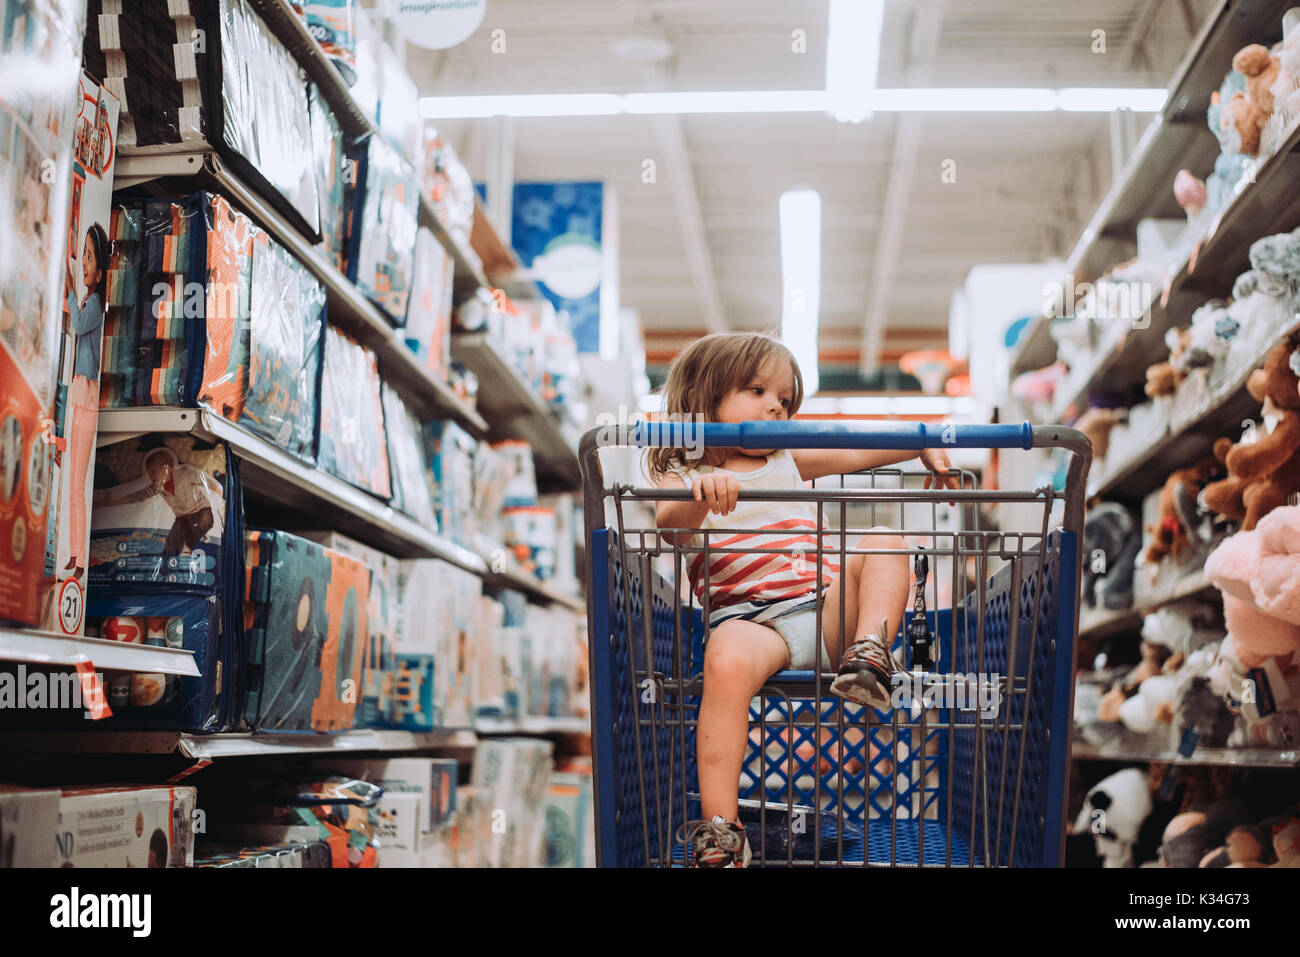 A toddler sits in a shopping cart in a toy store. - Stock Image